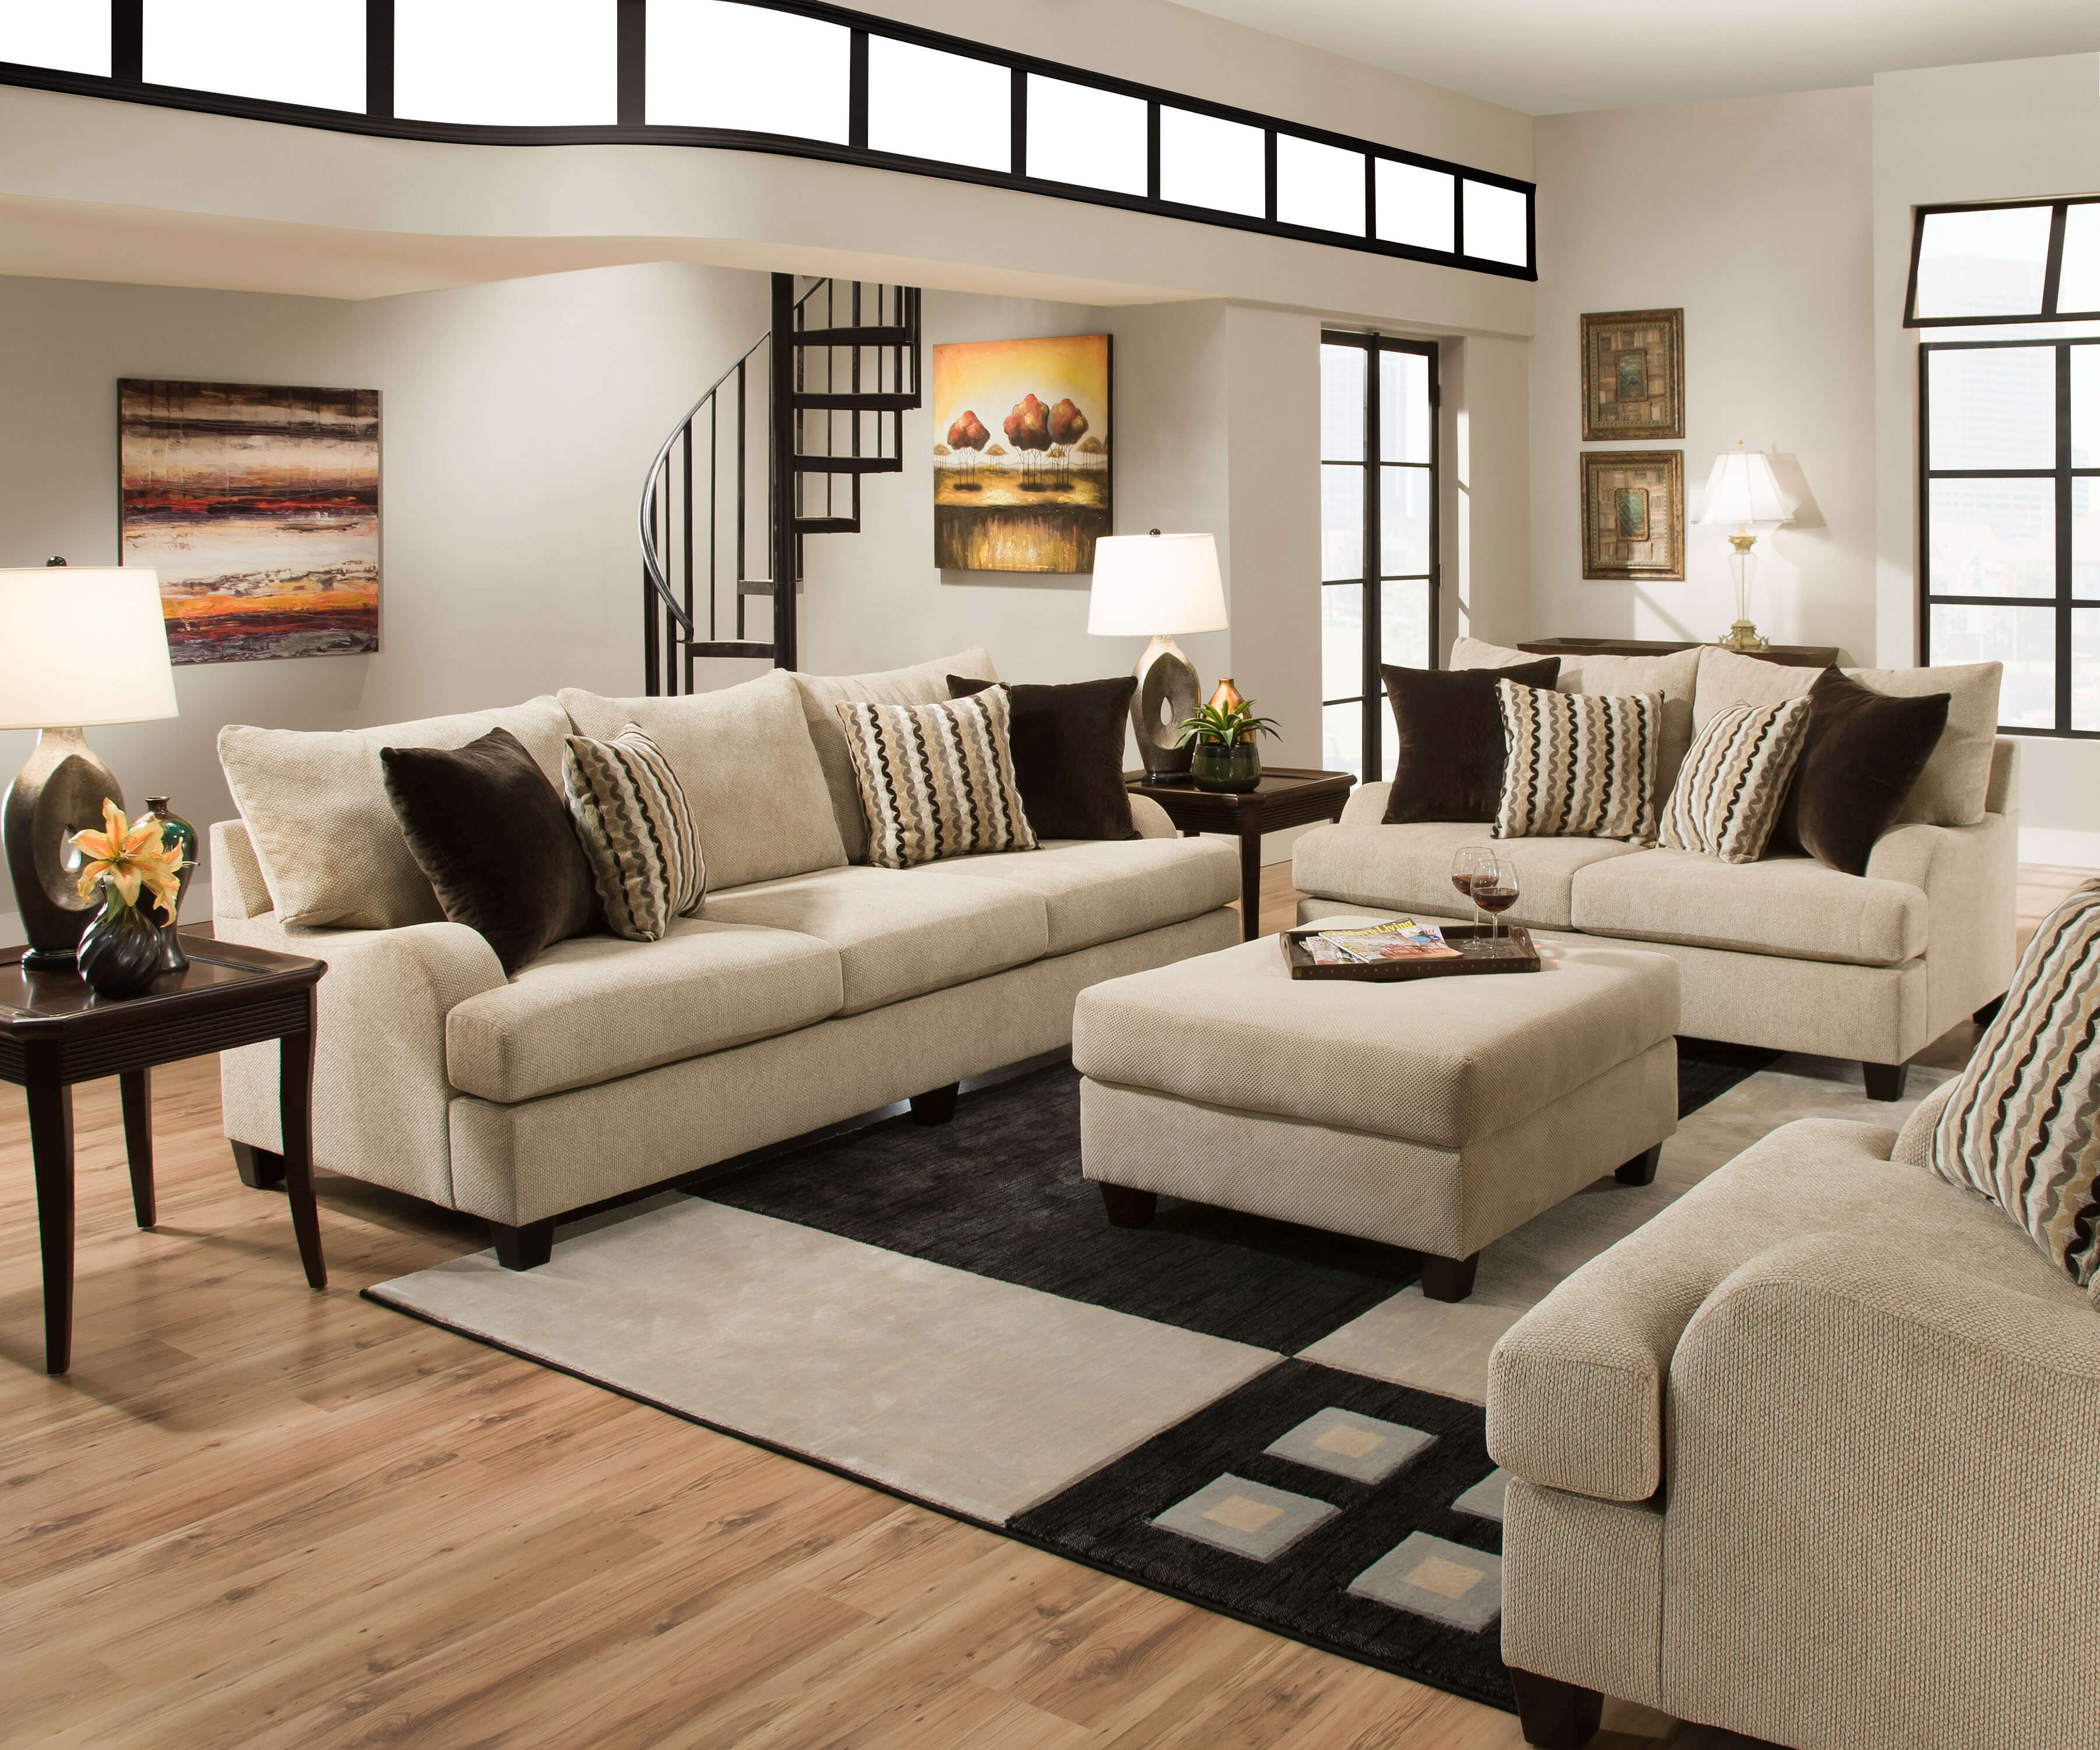 Living Room Sofa Set : Simmons Trinidad Taupe Living Room Set  Fabric Living ...